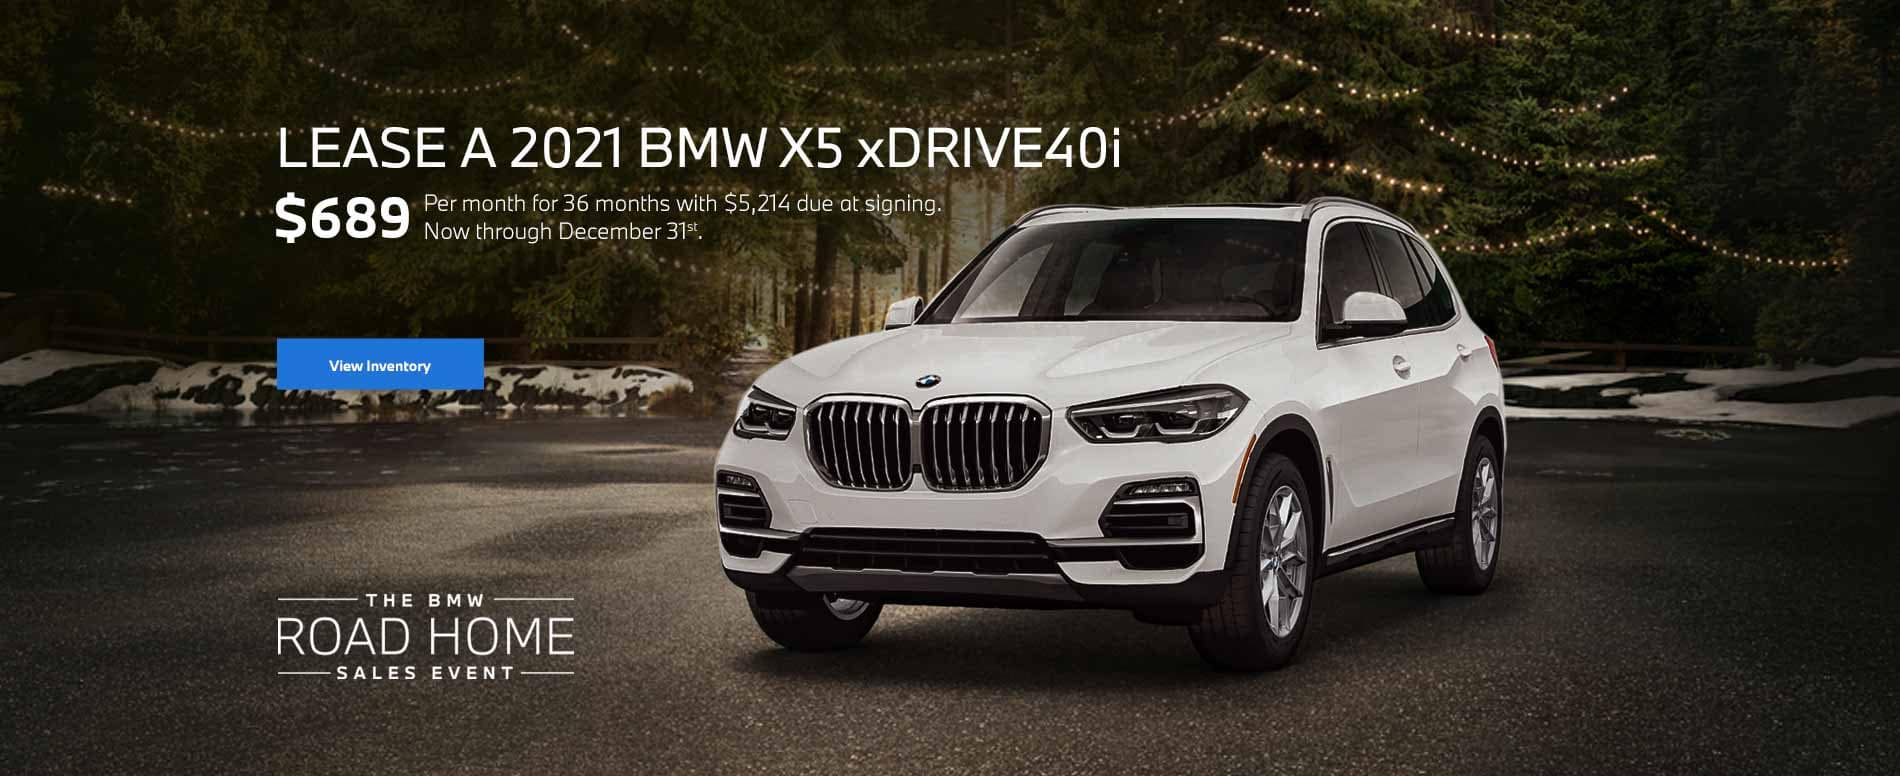 December 2021 BMW X5 Lease Special